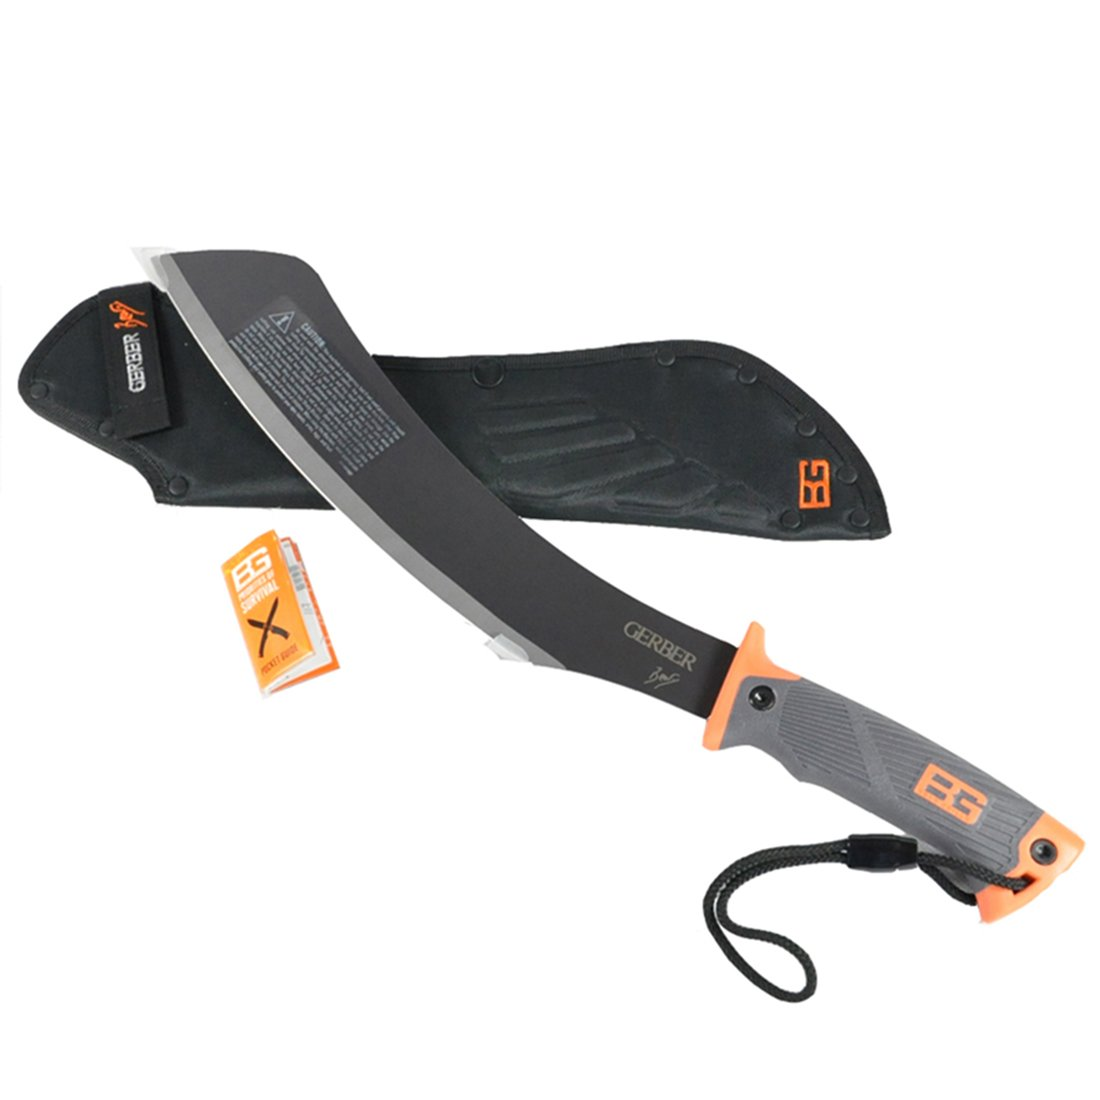 Gerber 31-002289 Bear Grylls Parang Machete with Nylon Sheath  $36.67